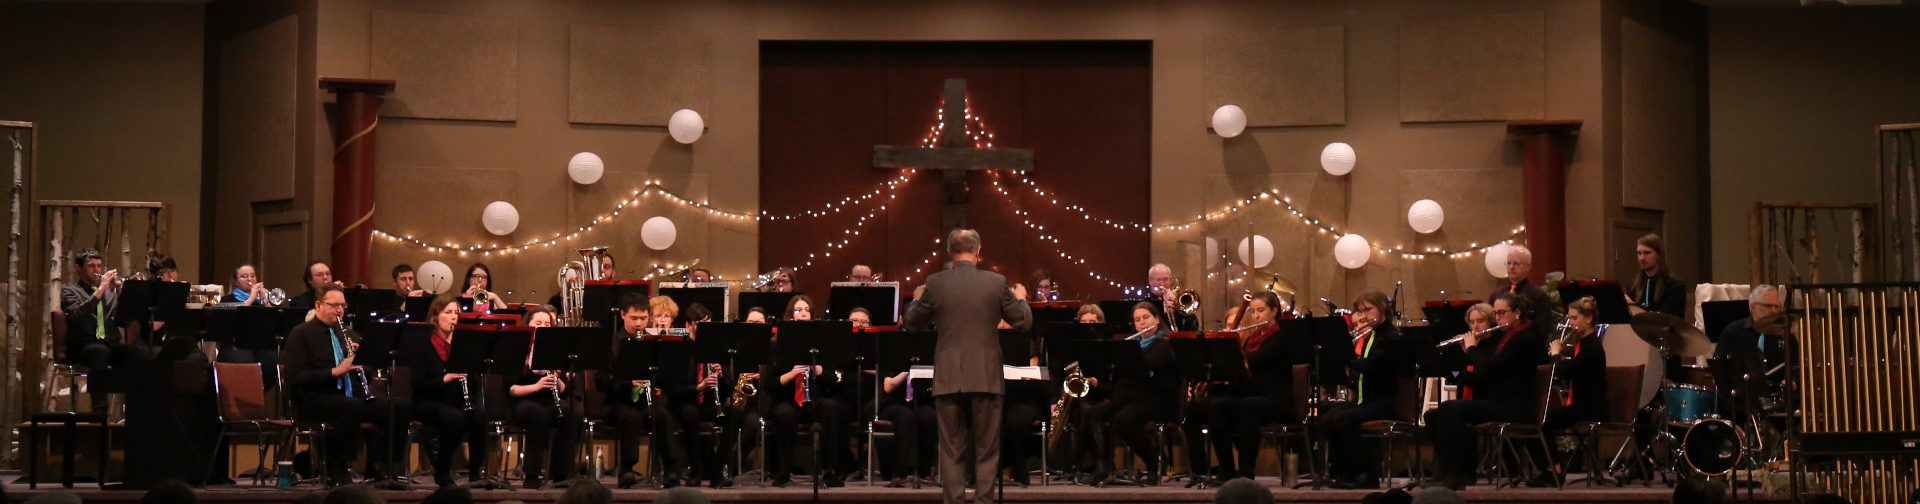 the kamloops community band in performance